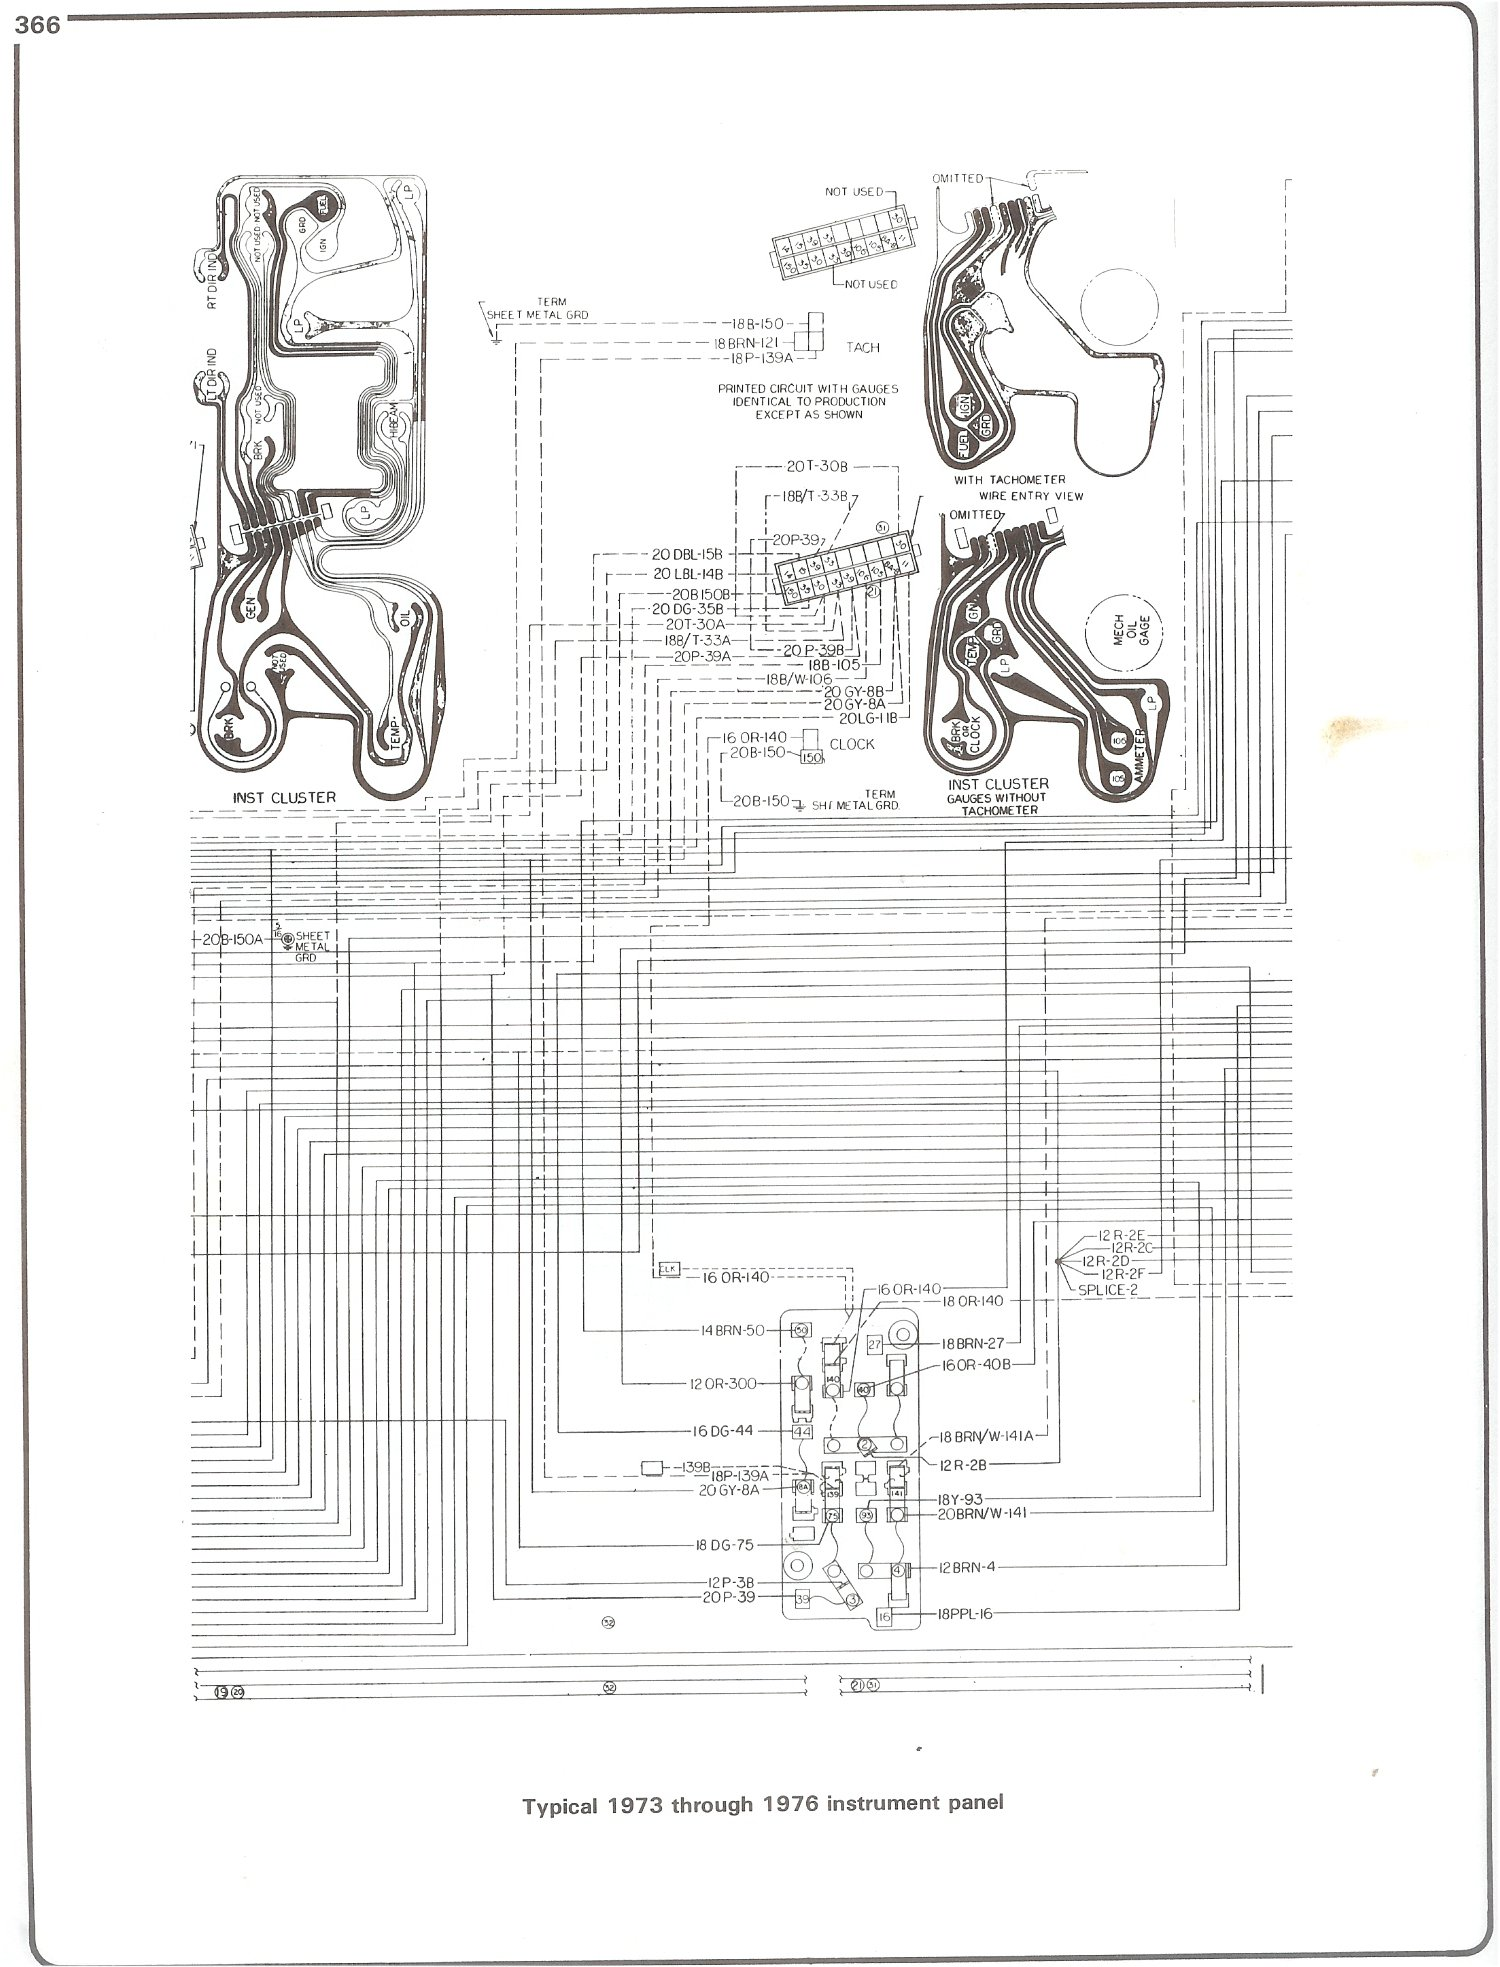 96 pat engine diagram engine anatomy wiring diagram